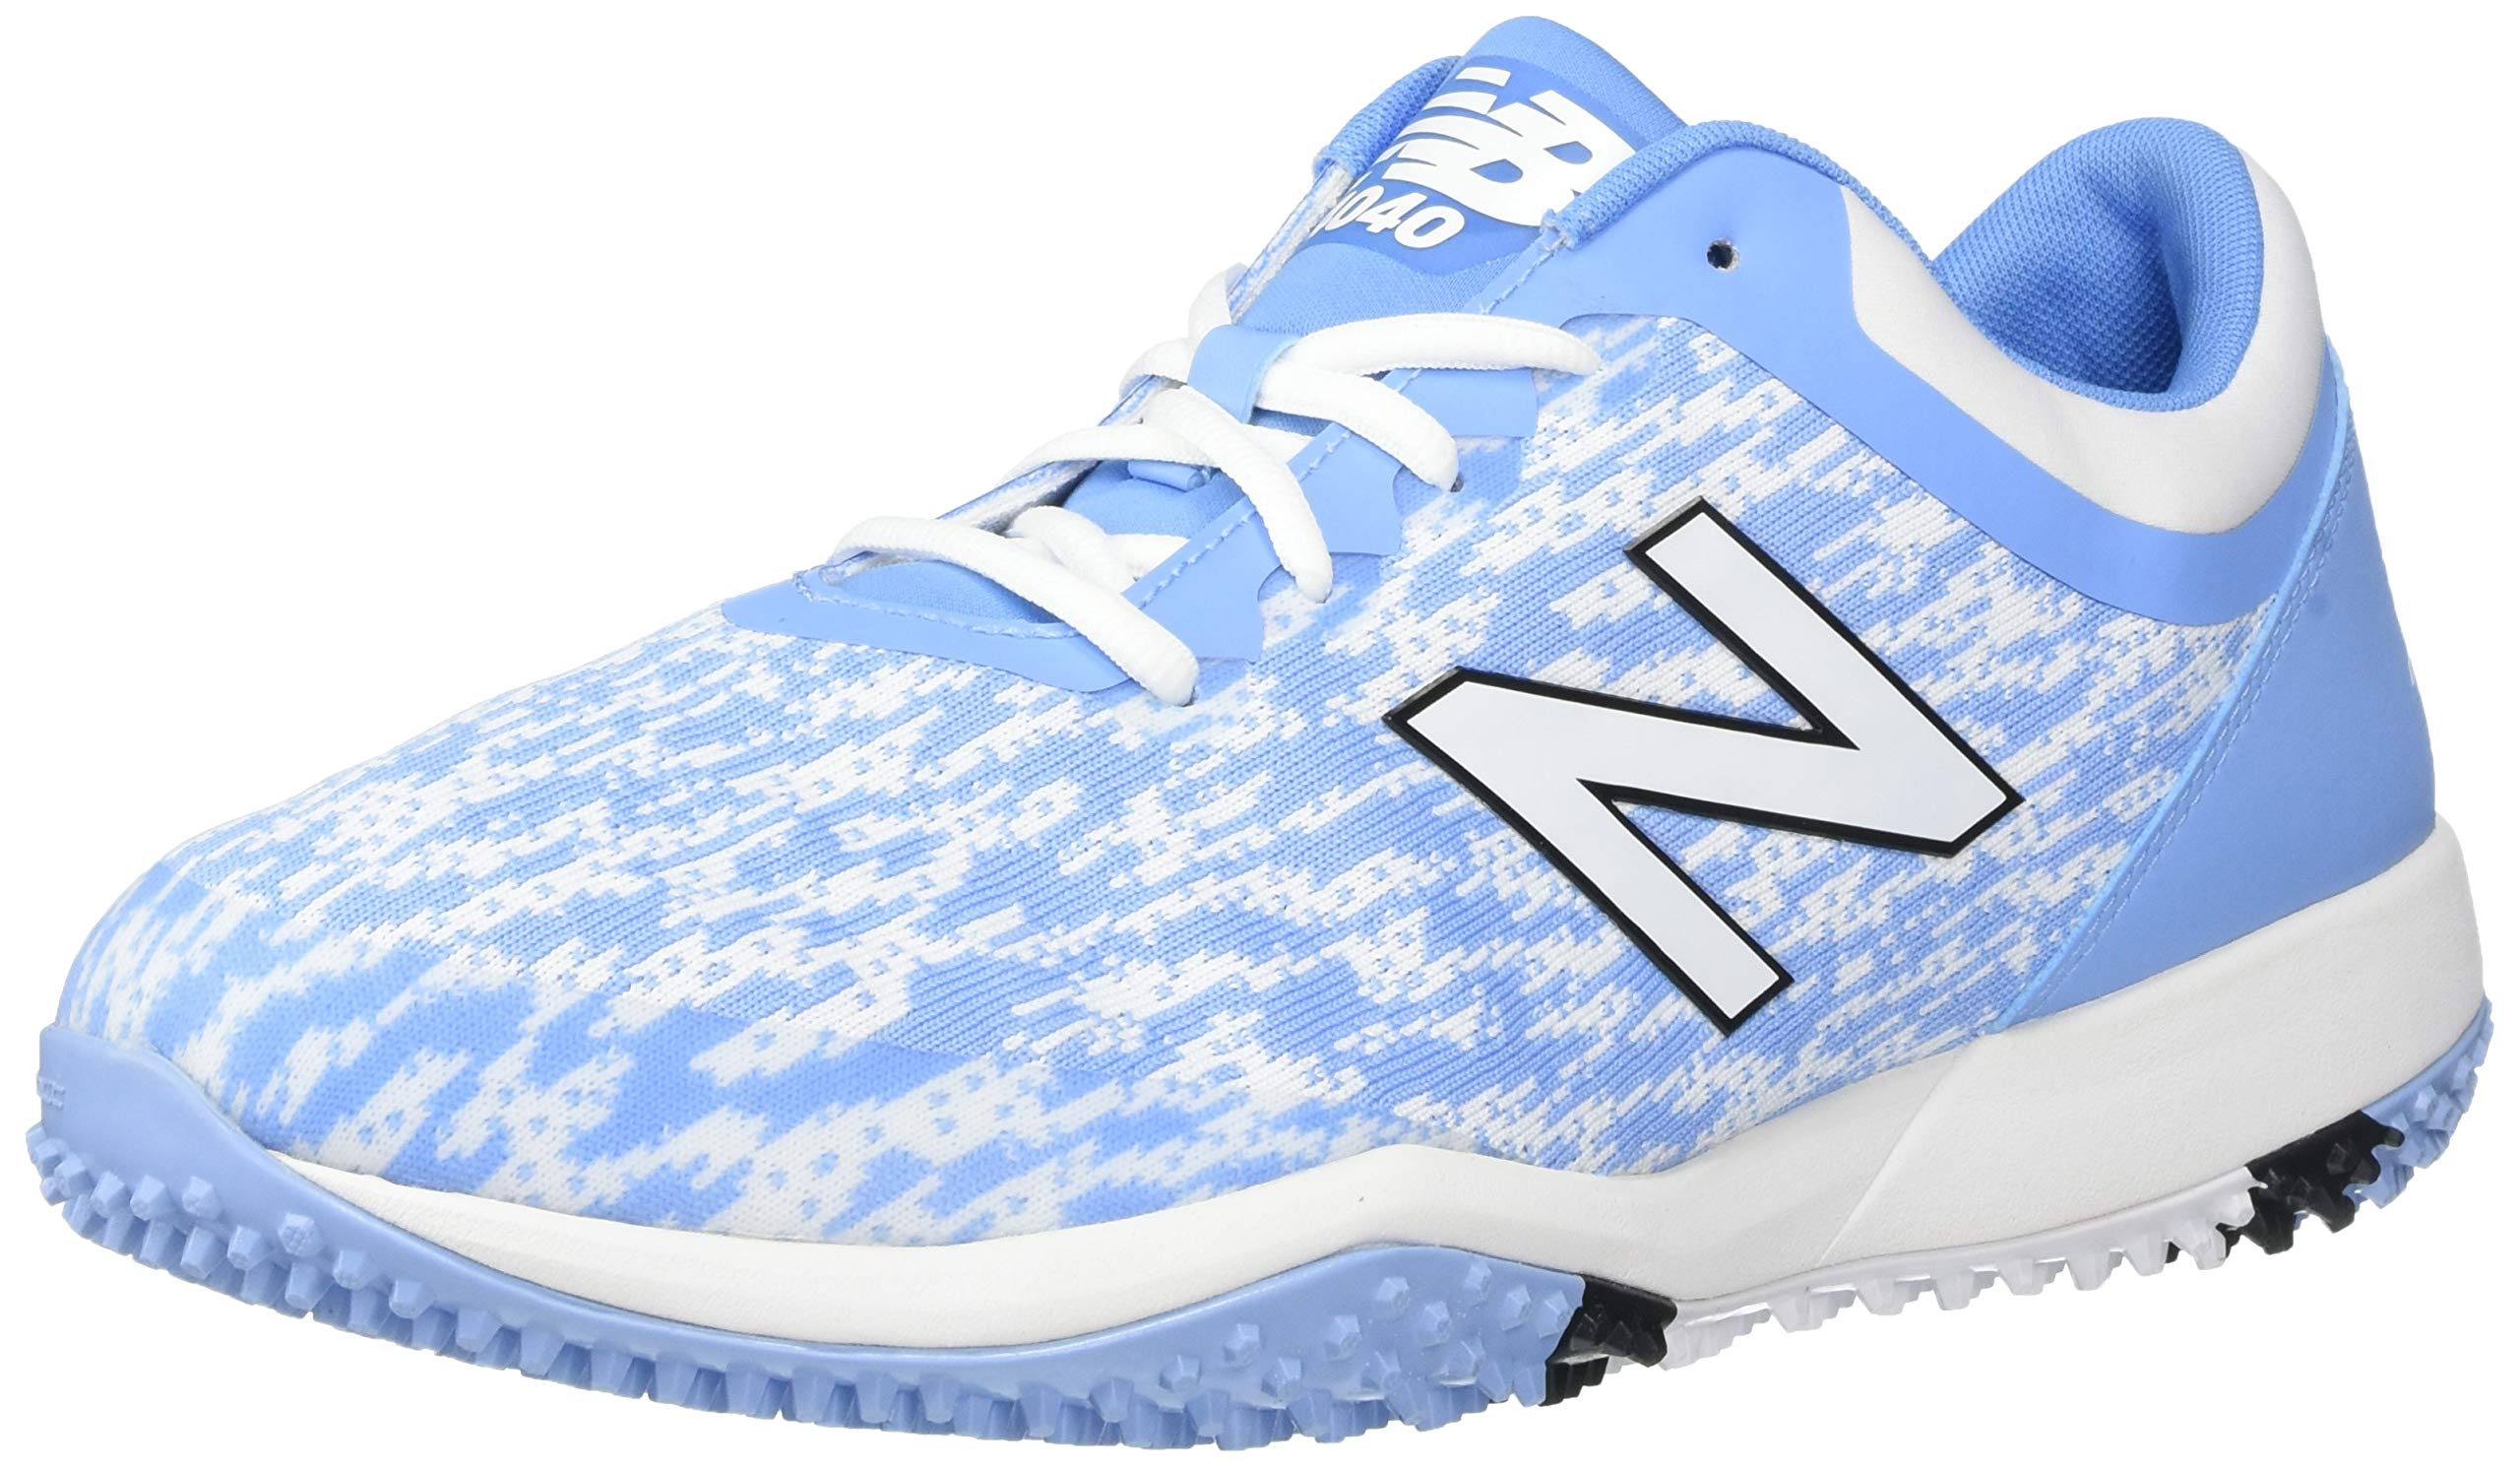 New Balance Men's 4040v5 Turf Track and Field Shoe, Baby Blue/White, 5 D US